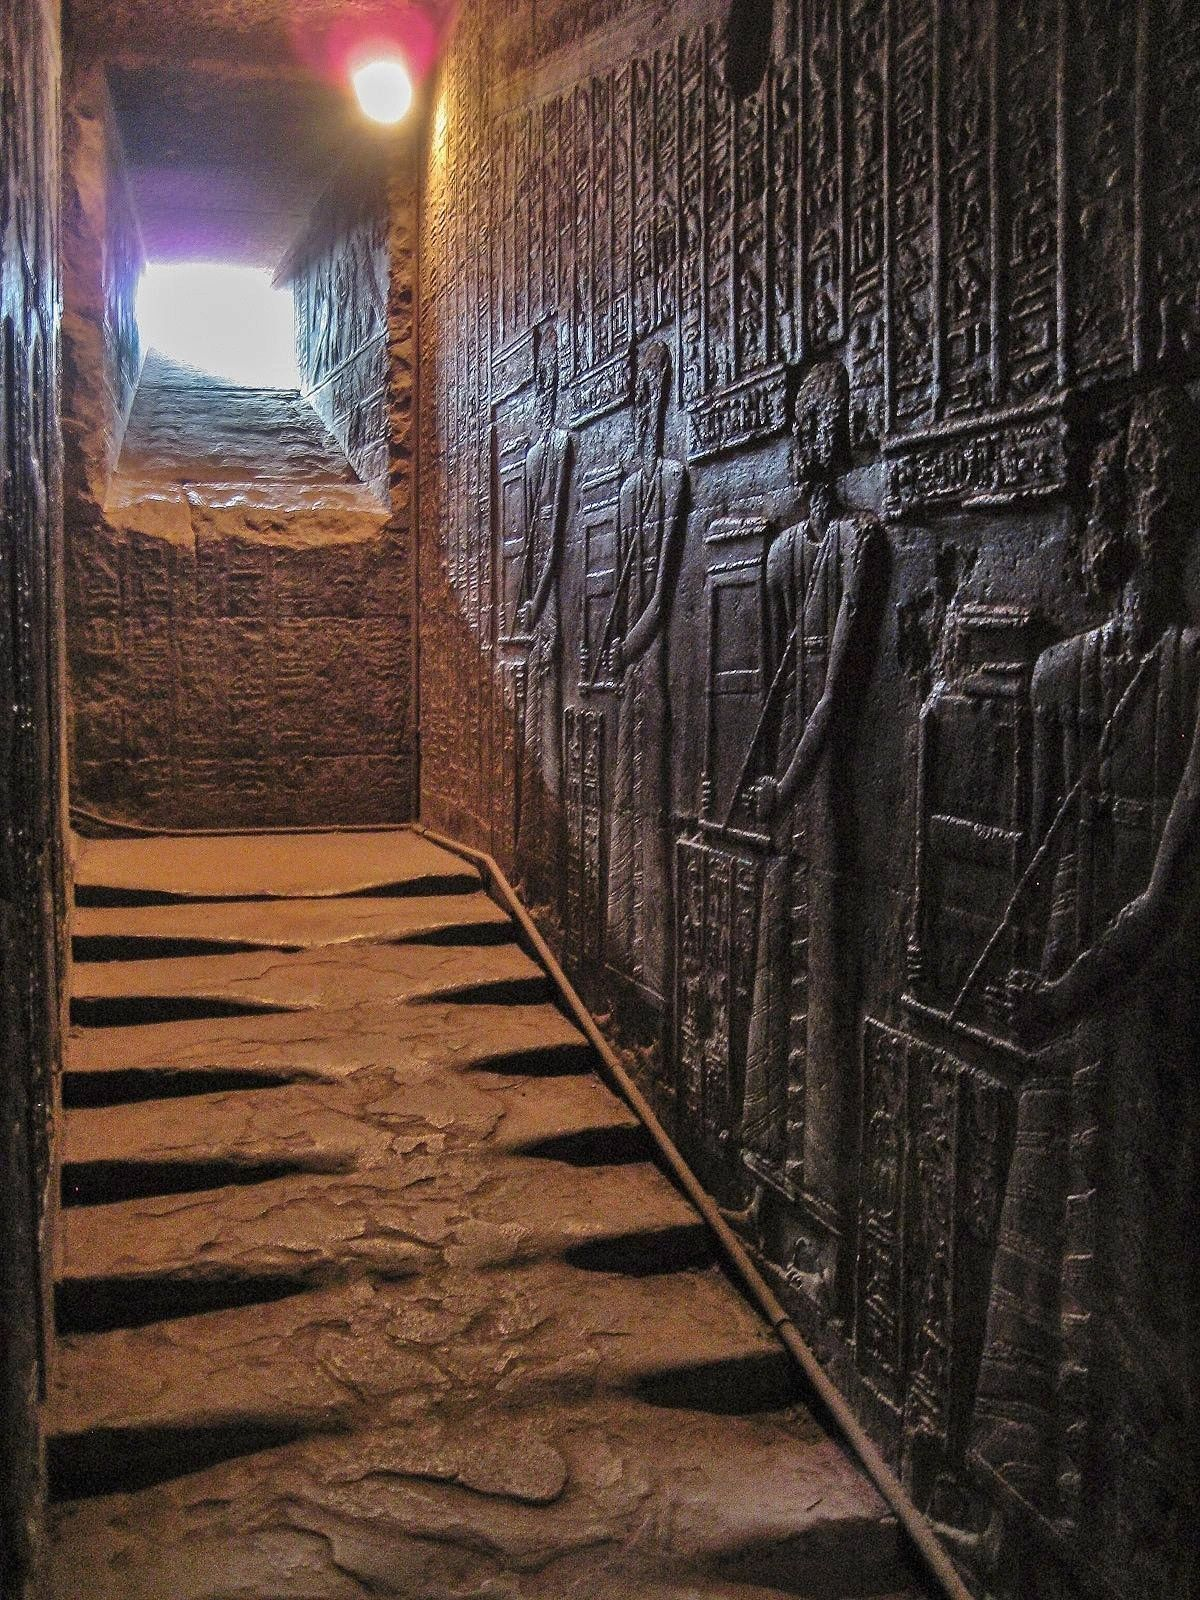 This is a stairway in the Temple of Hathor in Dendera, Egypt.